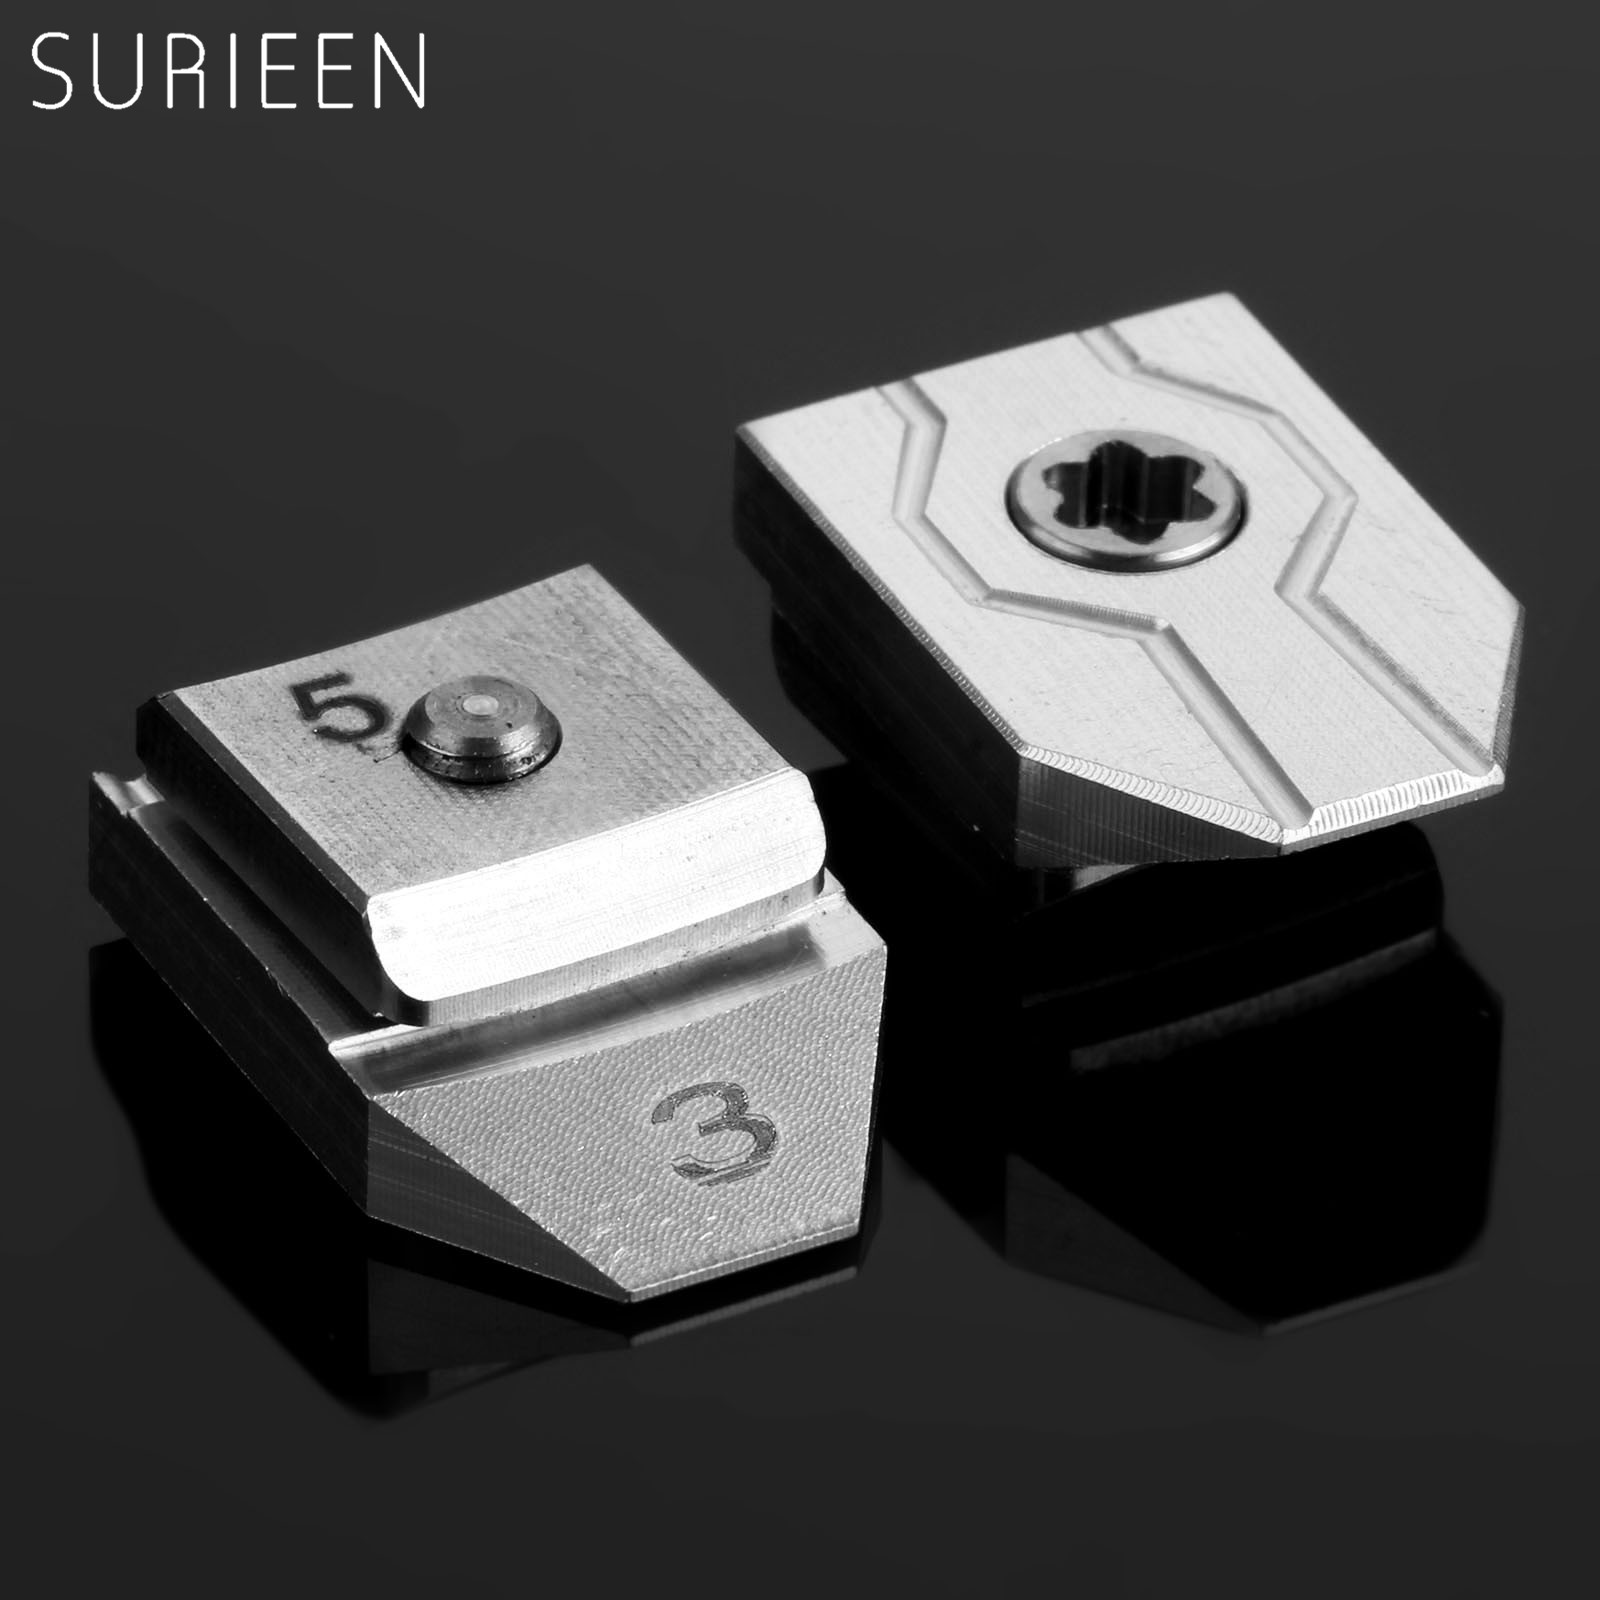 SURIEEN 2017 8g Golf Weight Movable Sliding Slider Adapter For Taylormade R15 Driver Add Head Swing Weights Silver Sports Golfer